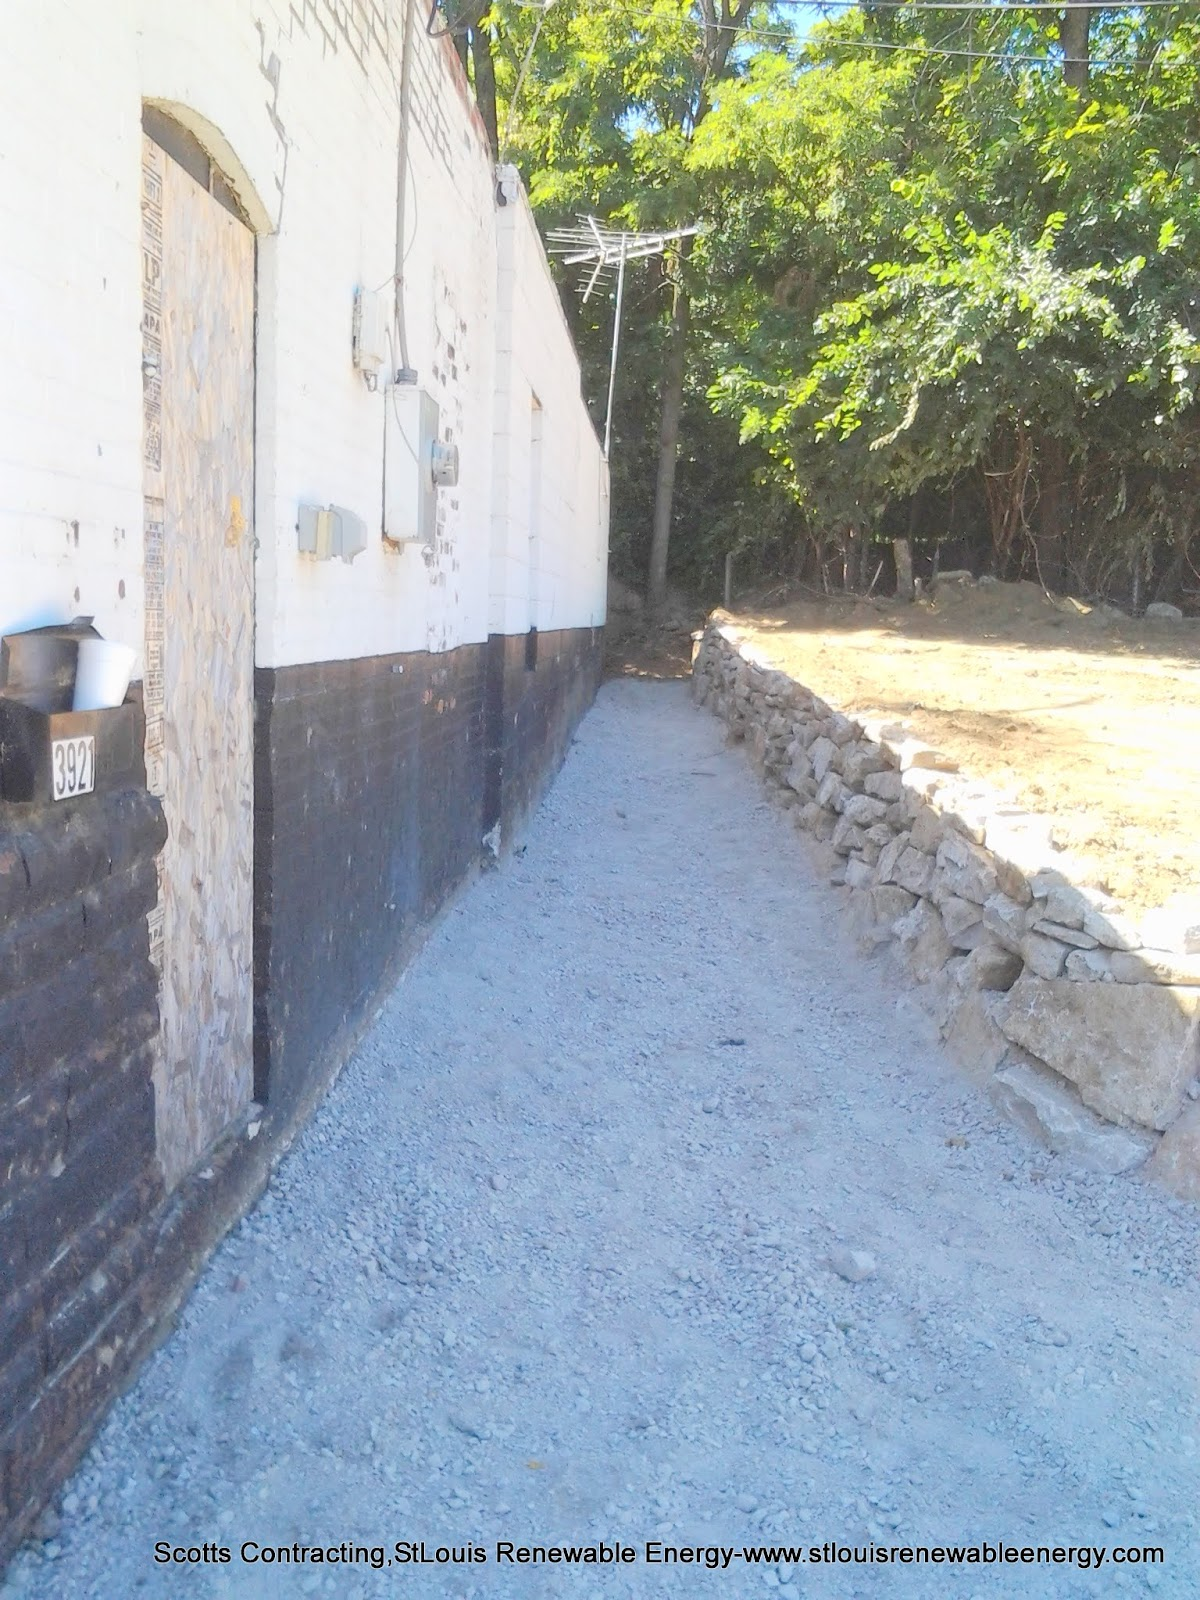 4-6 in Crushed Limestone Rock, Chet-Minus base prepped for the Concrete Sidewalk, Side Entrance, and Parking Area.